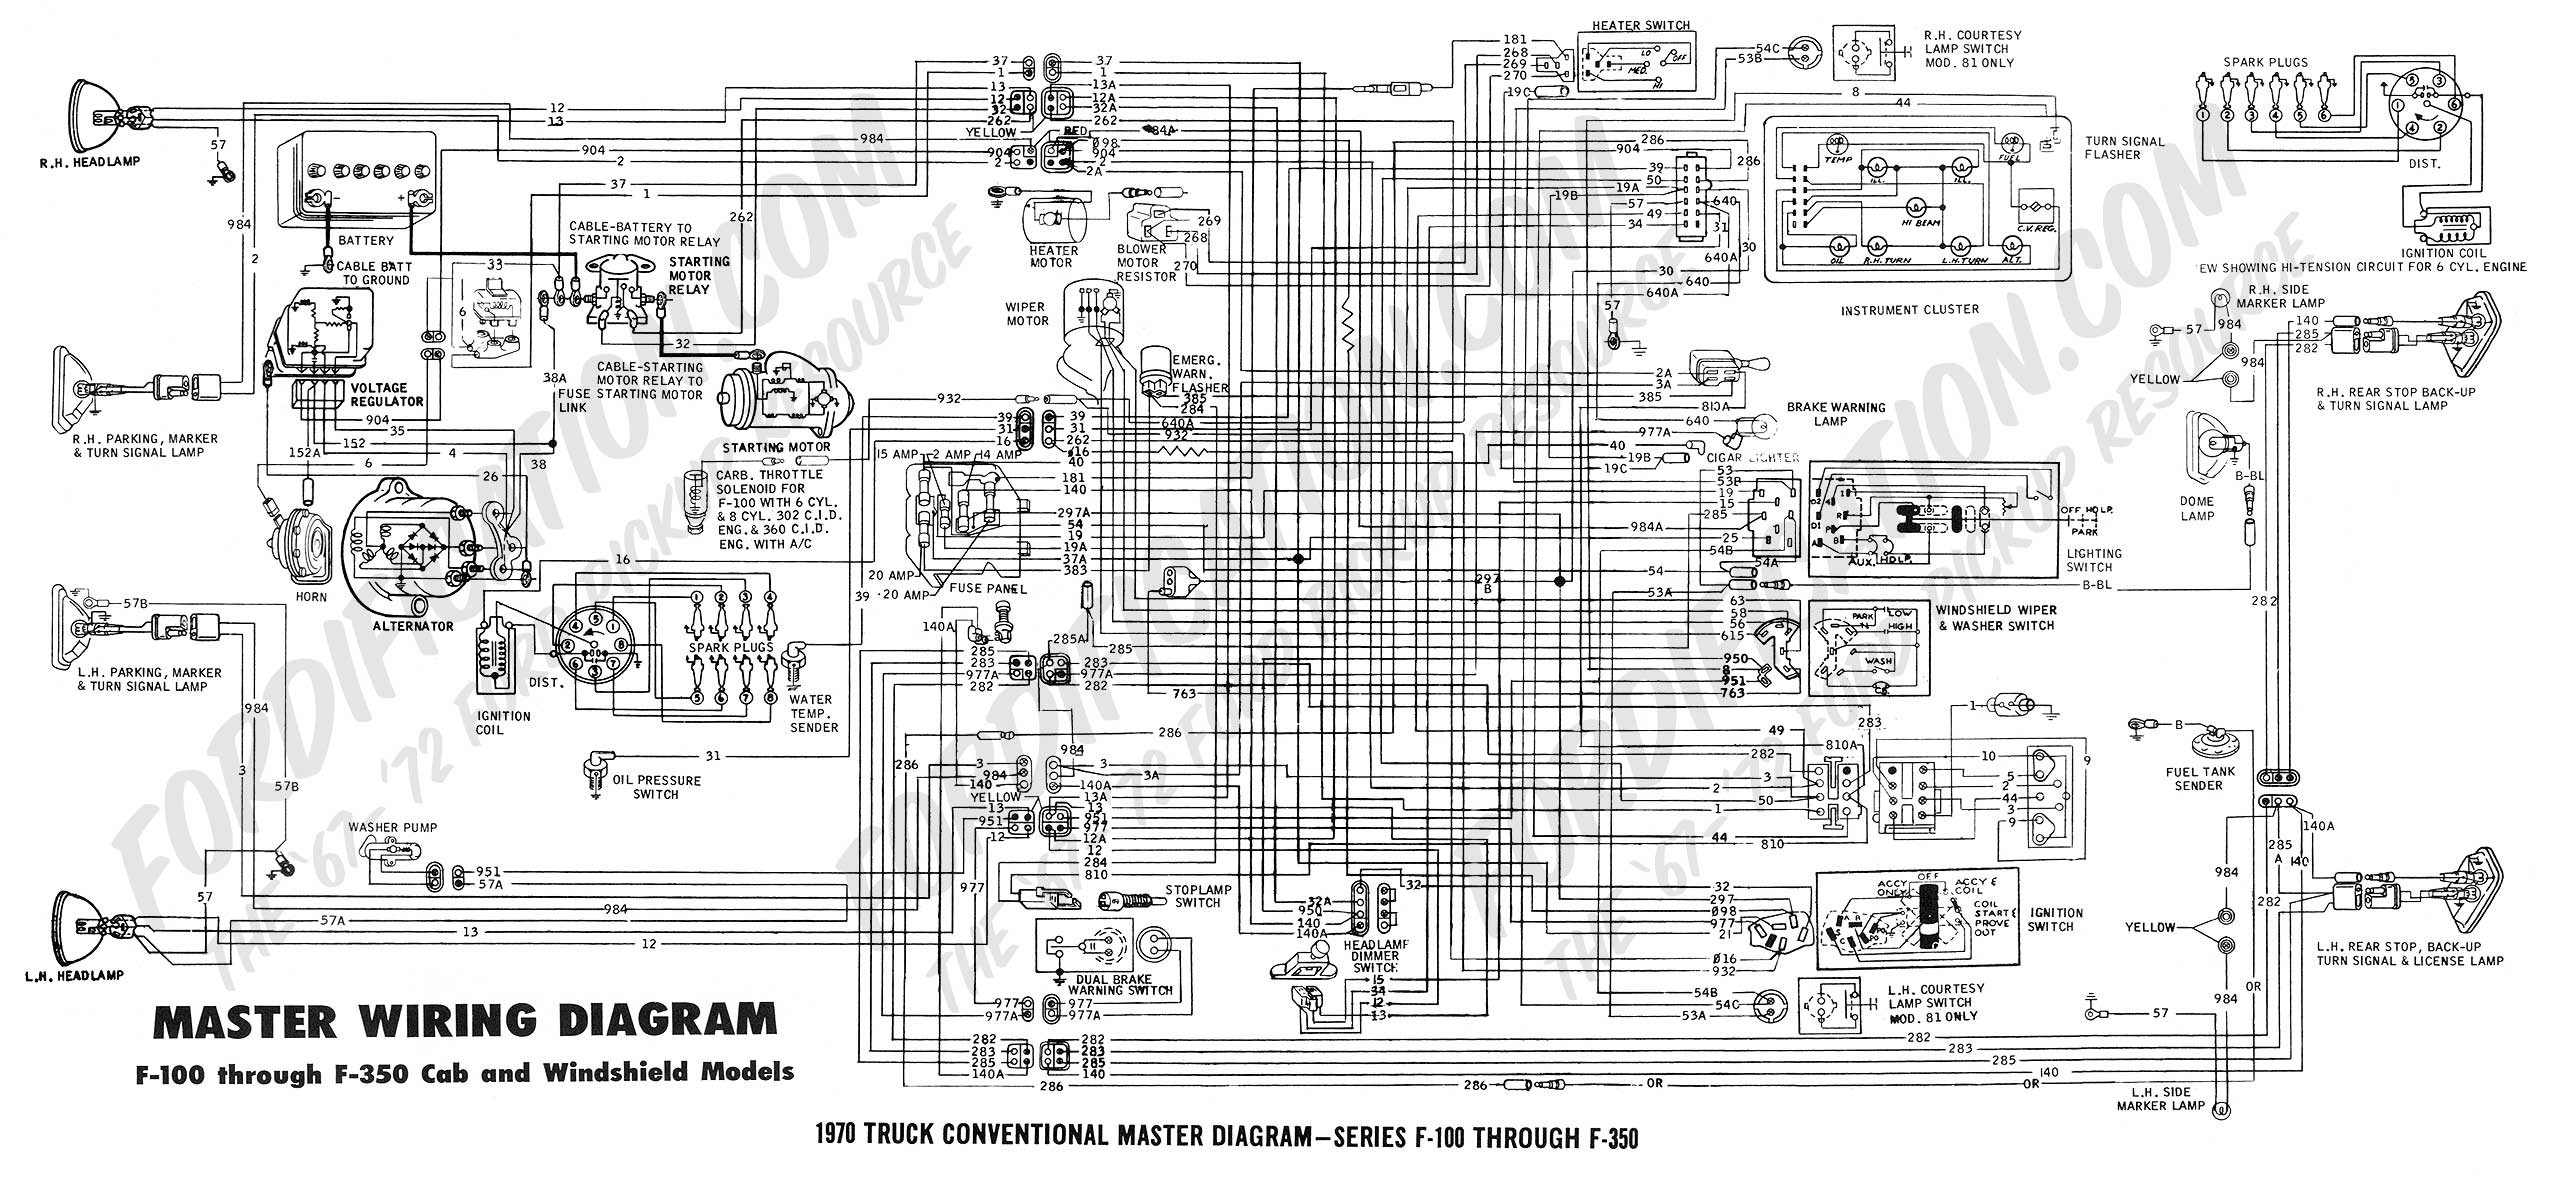 [TVPR_3874]  292 86 Ford F250 Wiring Diagram | Wiring Library | 1986 Ford F350 Wiring Diagram |  | Wiring Library